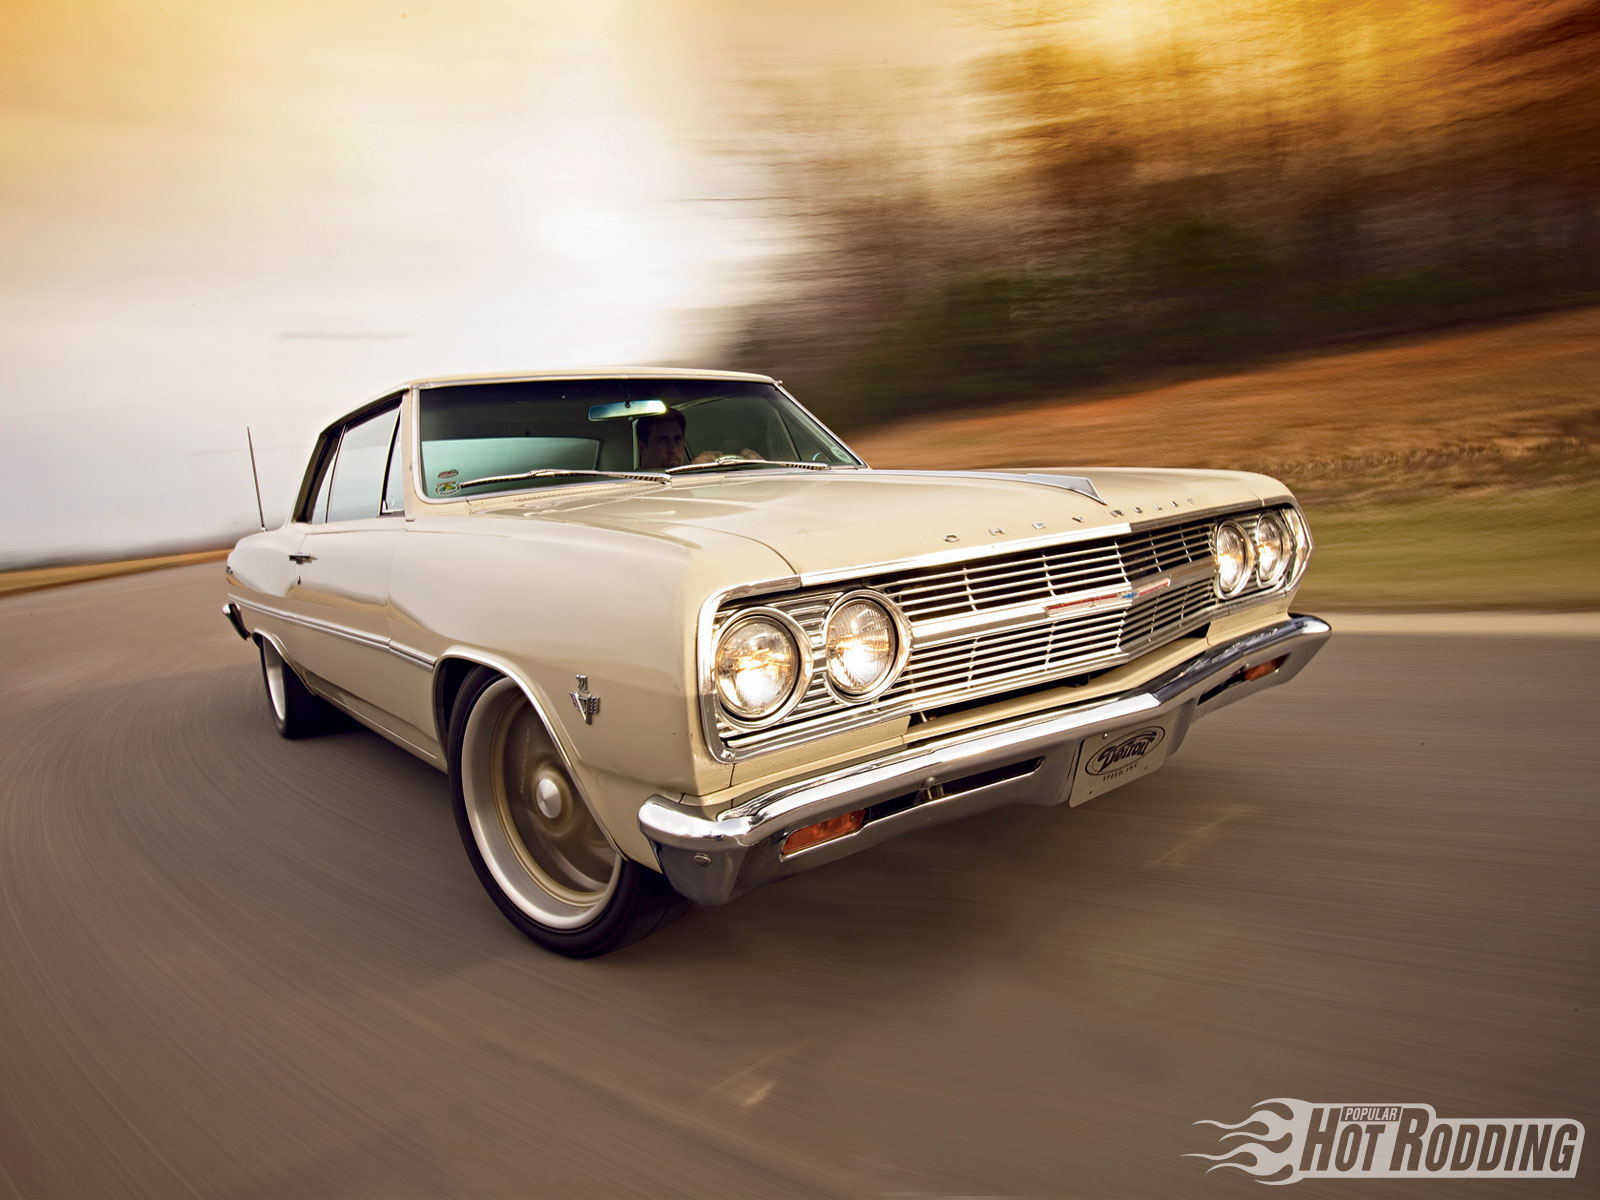 3840x1080 Wallpaper Classic Car 1965 Chevy Chevelle Wallpaper And Background Image